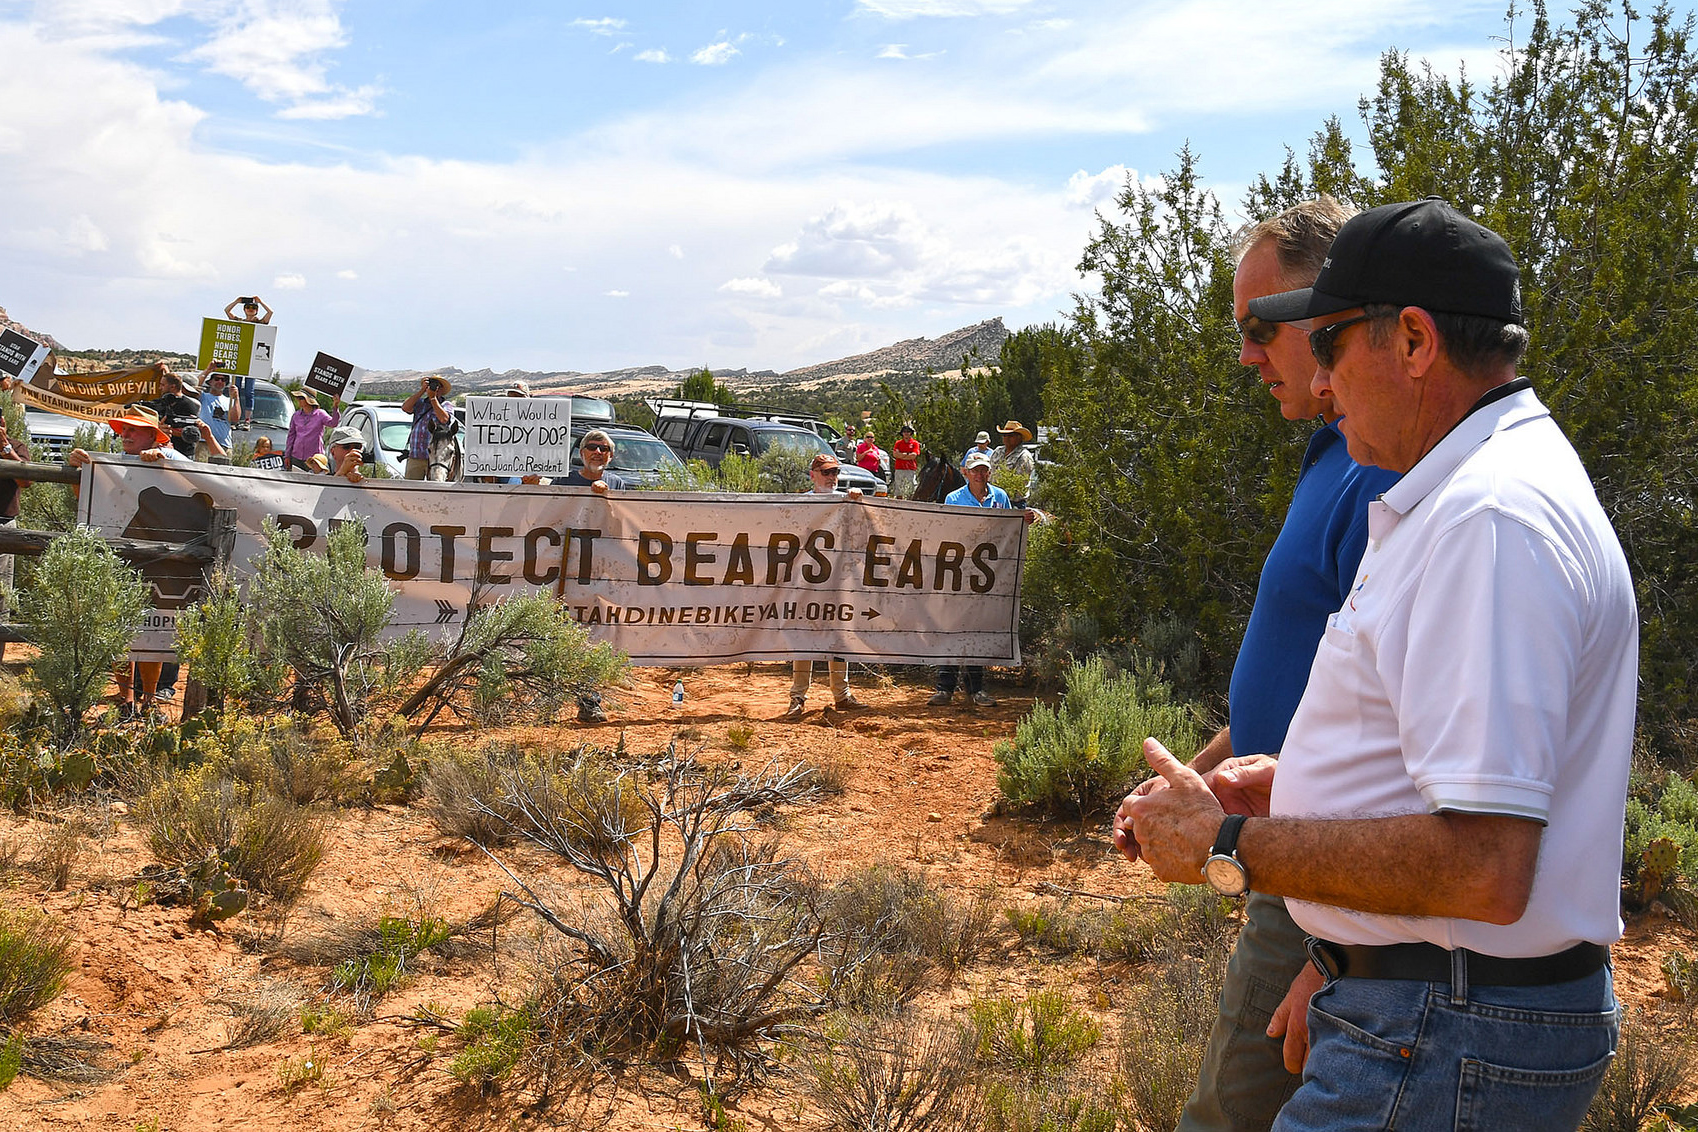 President Trump Launches Attack on Bears Ears, Grand Staircase-Escalante National Monuments